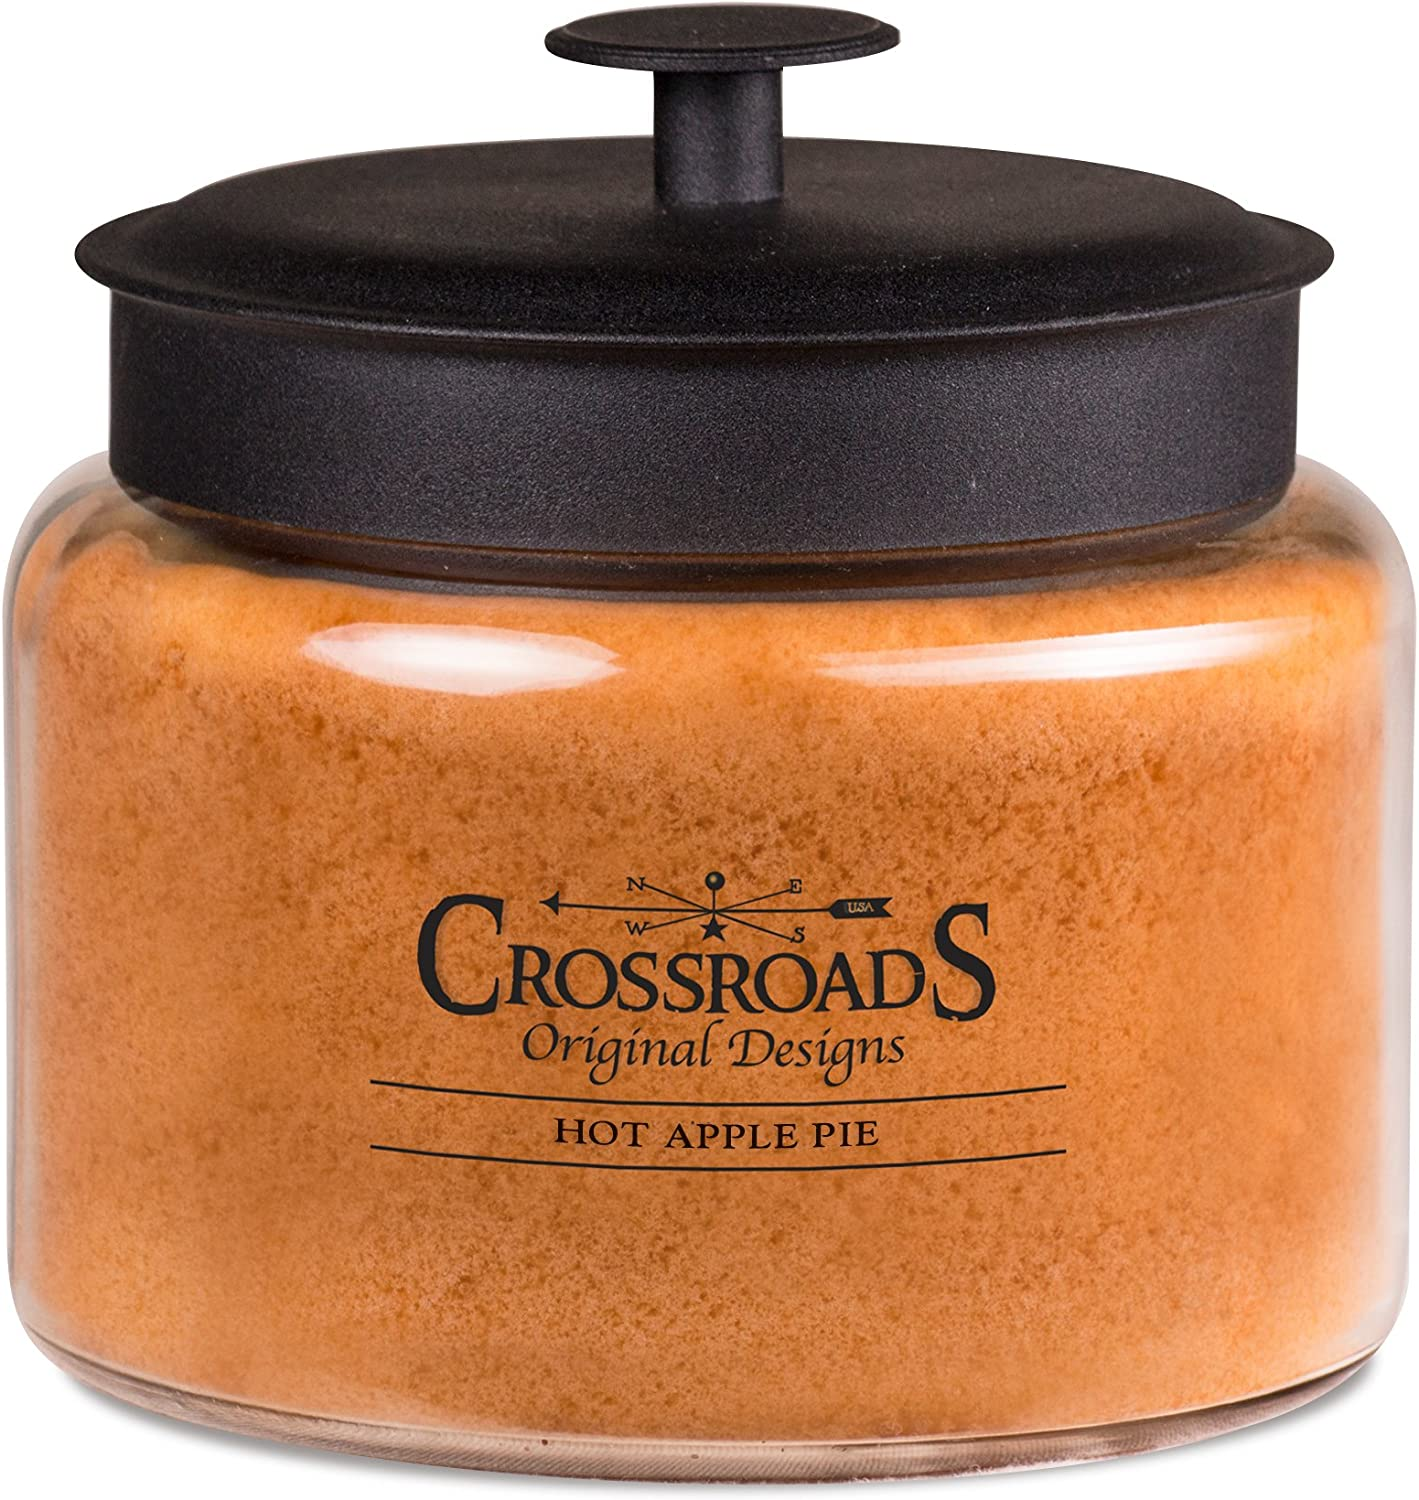 Crossroads Hot Apple Pie Scented 4-Wick Candle, 64 Ounce